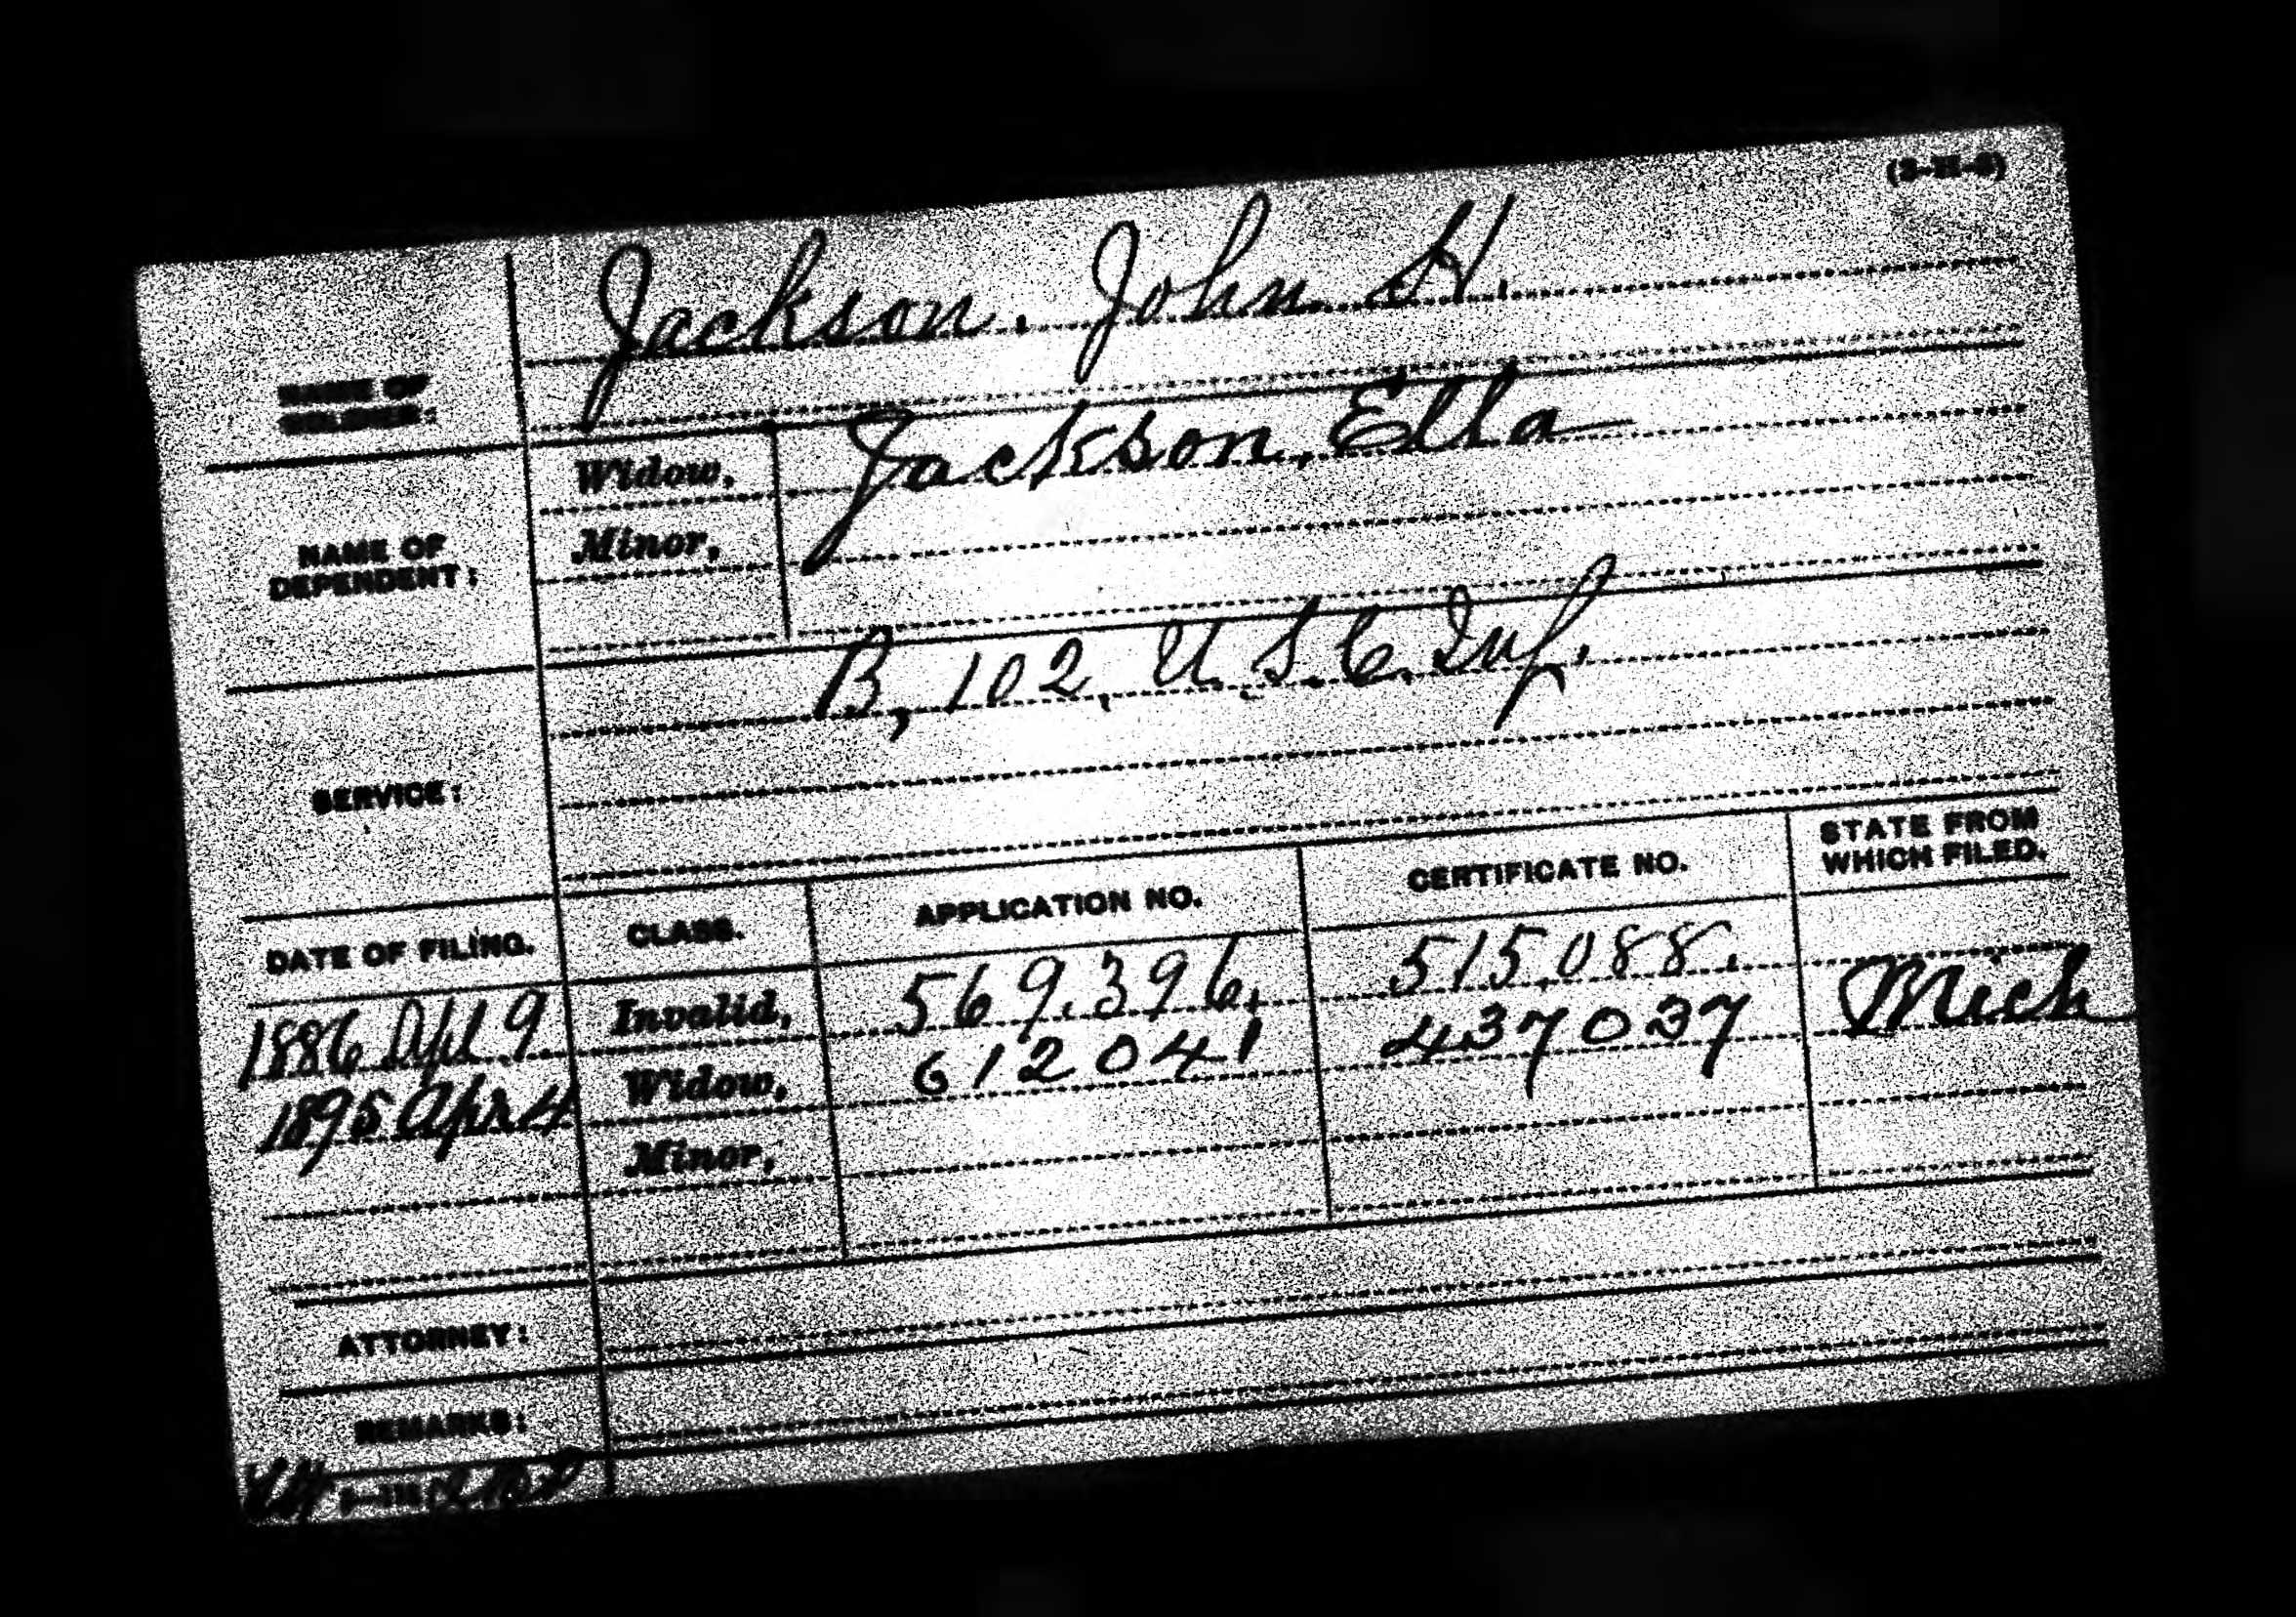 Civil War pension form for John H Jackson